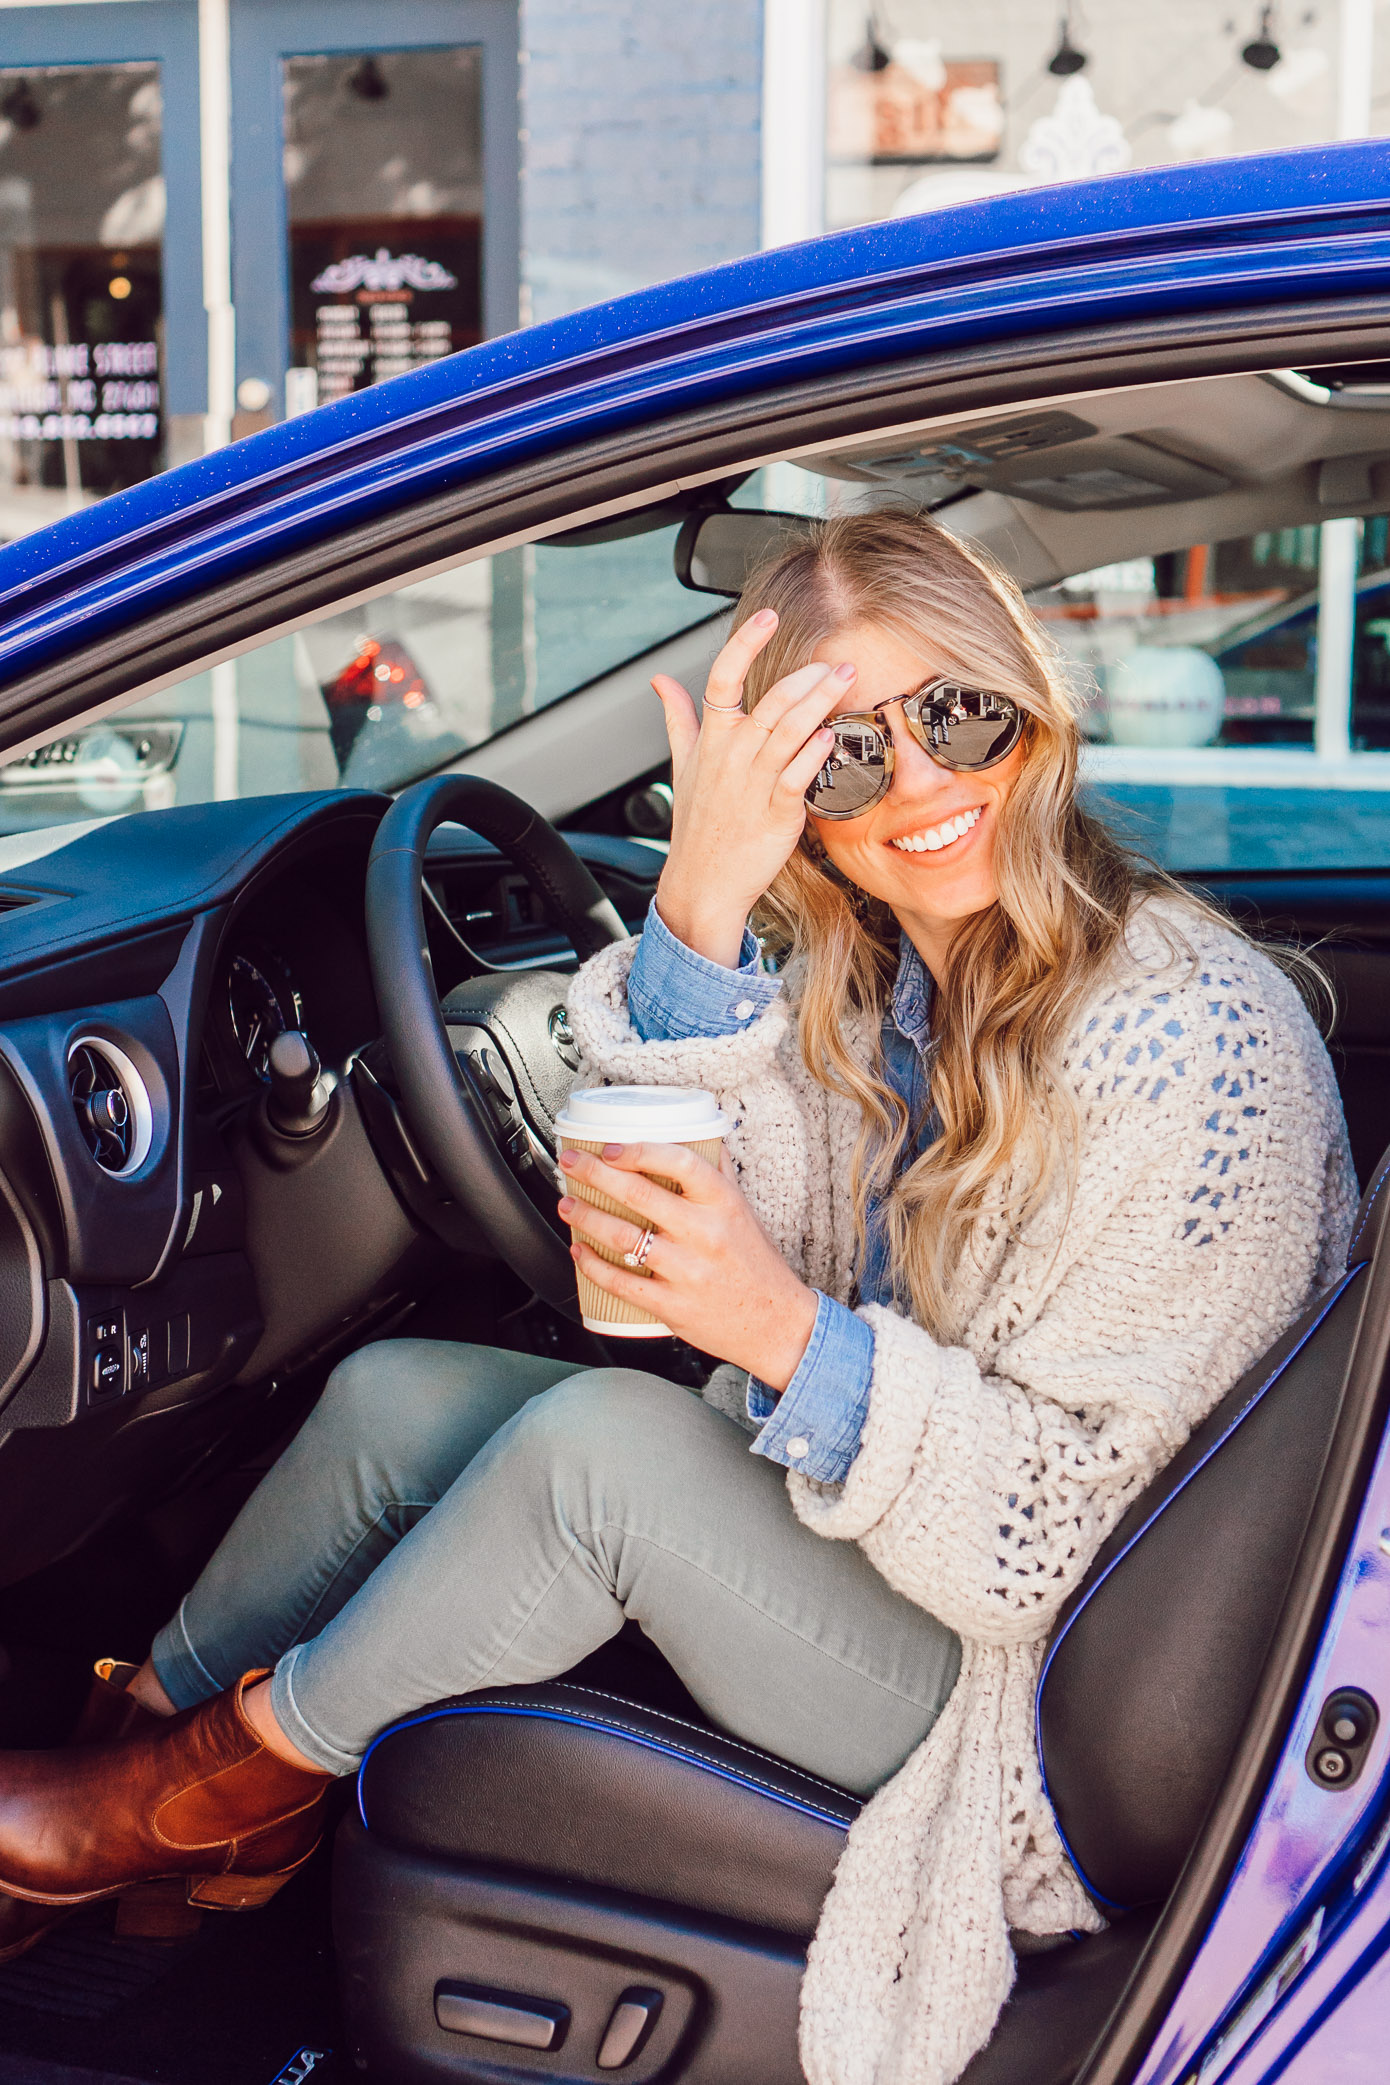 2019 Toyota Corolla | Raleigh Travel Guide, 48 Hour Raleigh NC Itinerary | Raleigh NC Travel Guide featured on Louella Reese